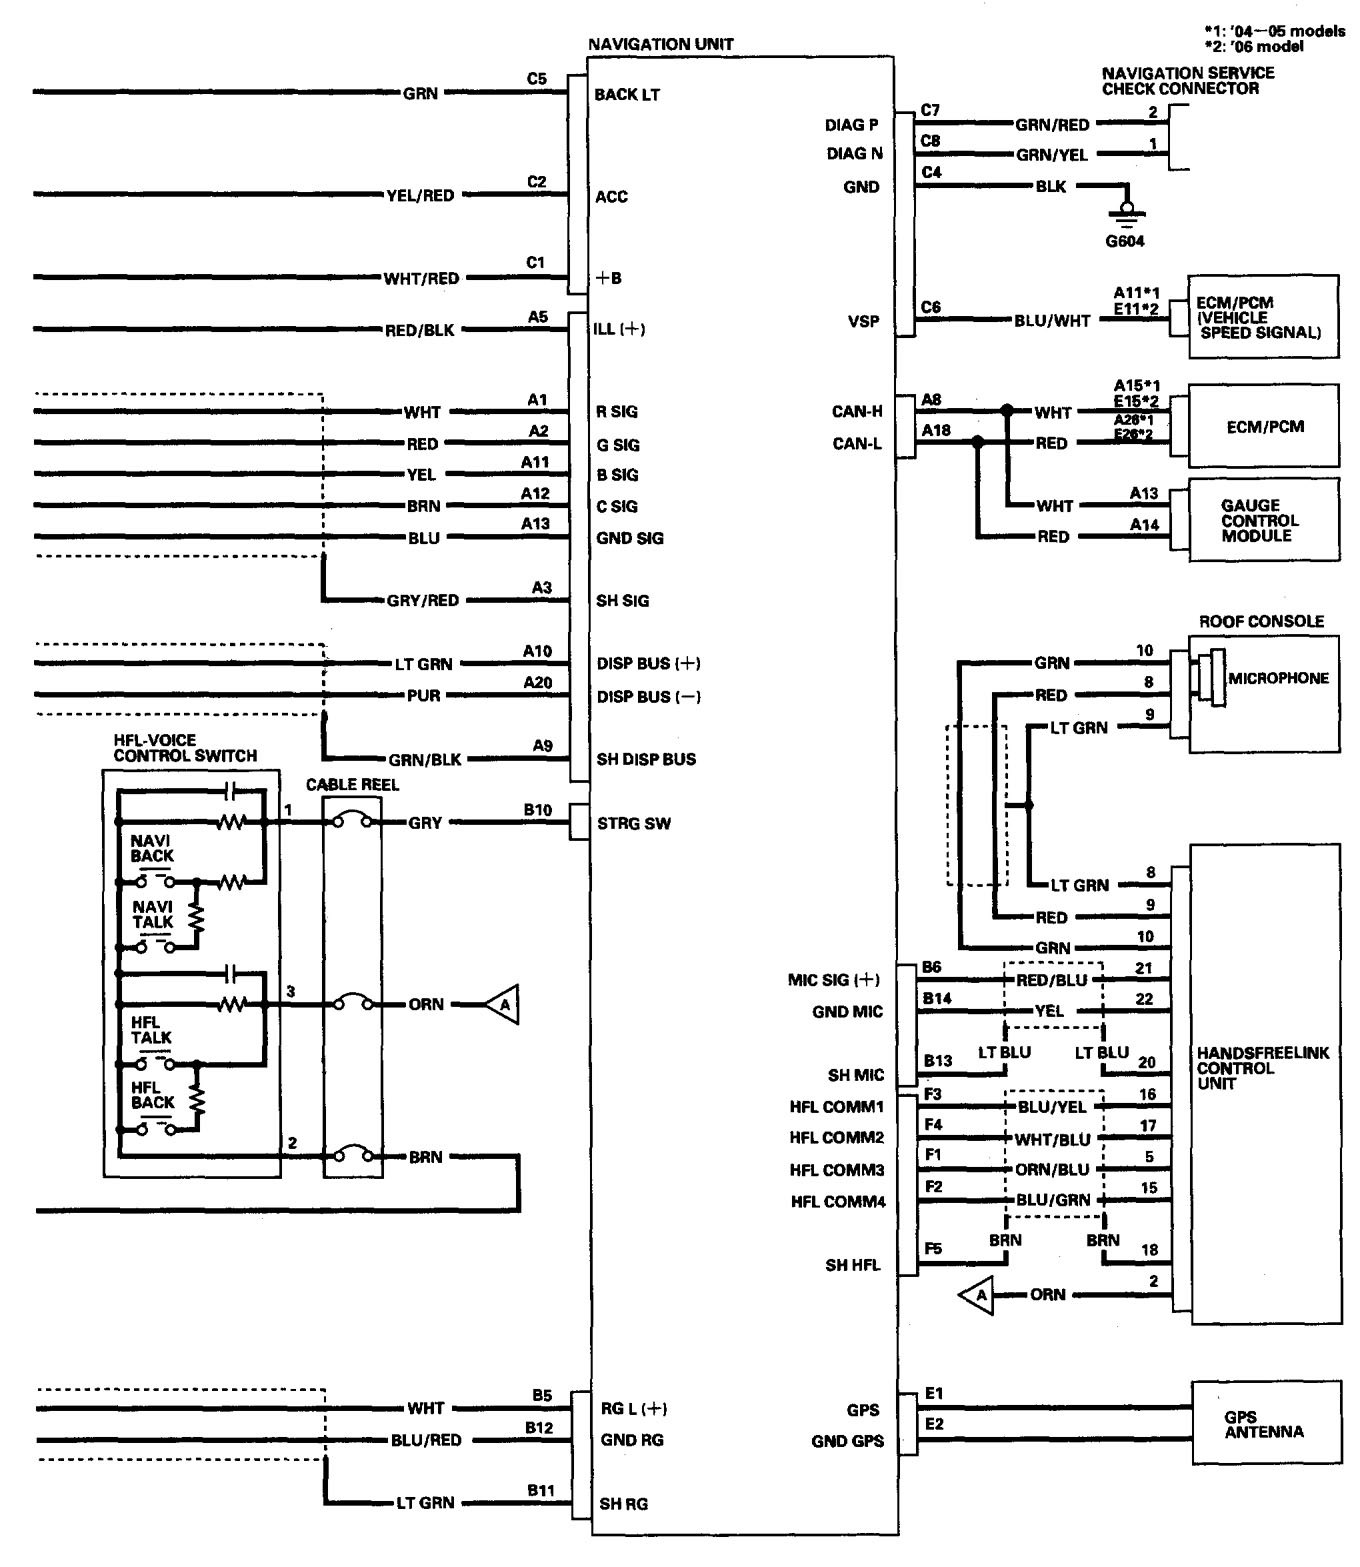 Acura Wiring Diagrams - Meta Wiring Diagrams on chevy lumina wiring diagram, lexus rx350 wiring diagram, volkswagen golf wiring diagram, dodge challenger wiring diagram, acura rsx automatic transmission, acura rsx power steering, infiniti g37 wiring diagram, buick reatta wiring diagram, porsche cayenne wiring diagram, cadillac cts wiring diagram, acura legend motor mount diagram, acura rsx oil filter, acura rsx thermostat replacement, subaru sti wiring diagram, acura rsx oil cooler, subaru baja wiring diagram, acura rsx solenoid, acura rsx water pump, honda civic wiring diagram, chrysler 300m wiring diagram,